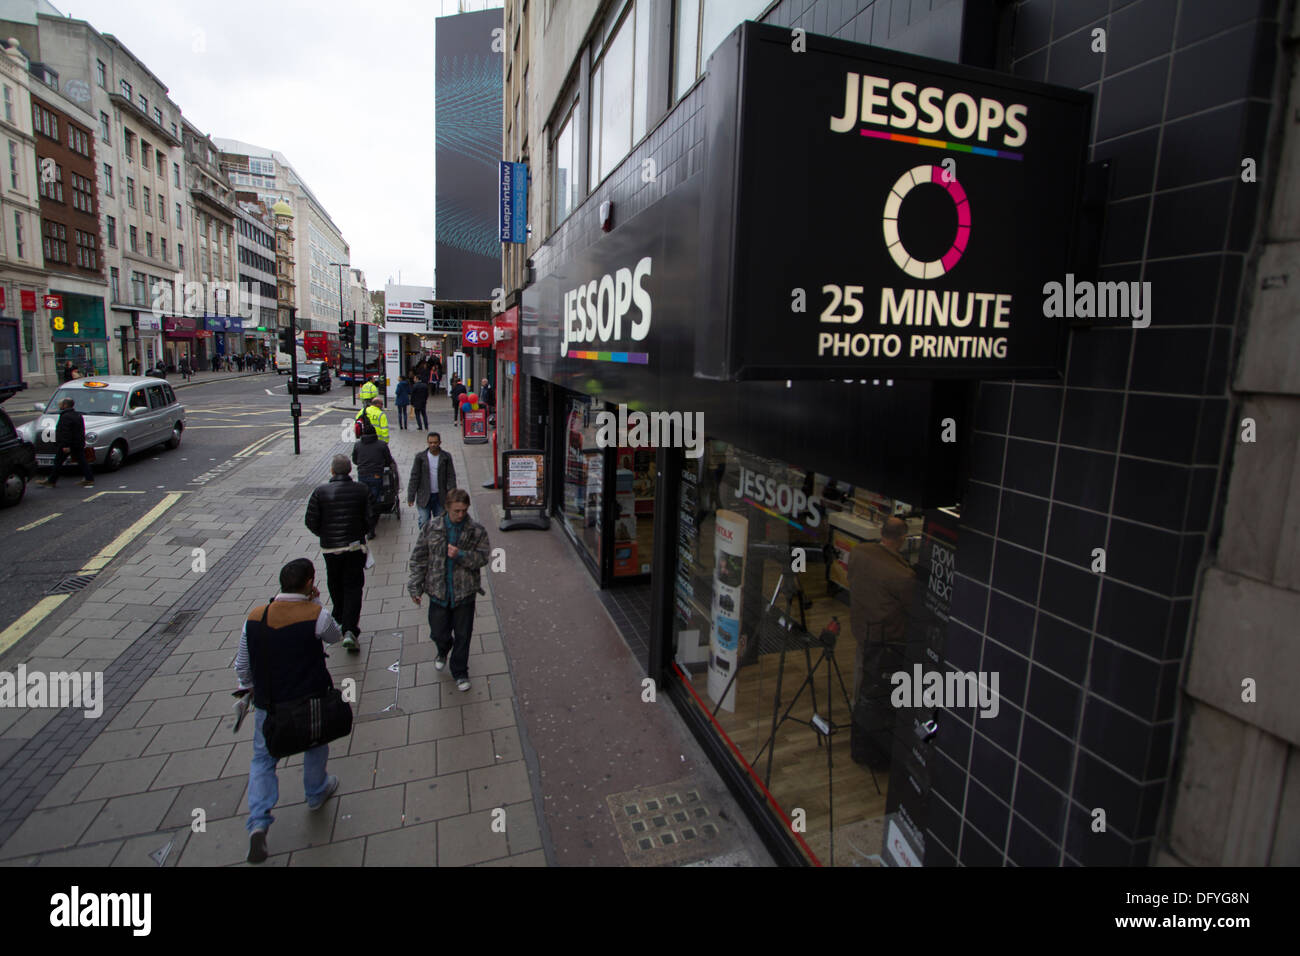 Jessops presa fotografica Oxford Street London Immagini Stock